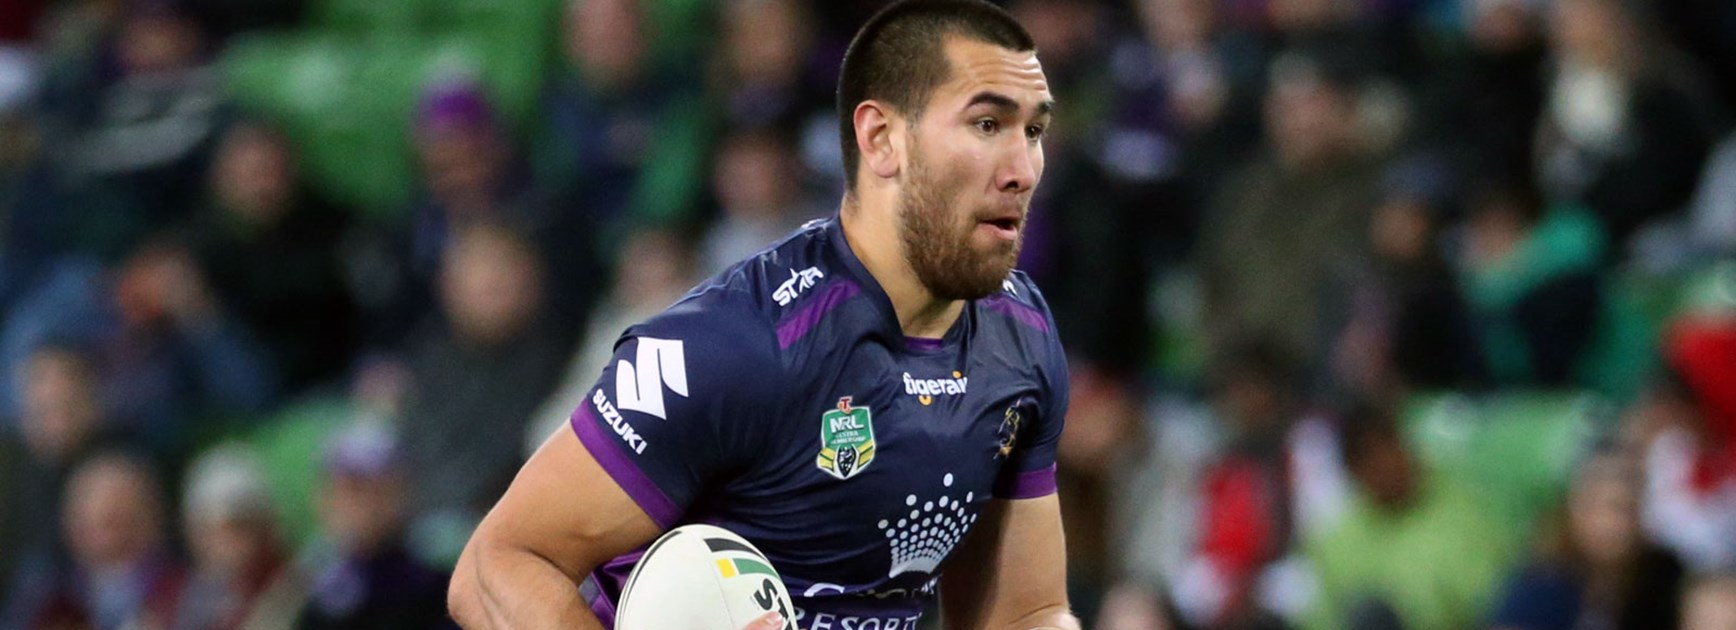 Storm forward Nelson Asofa-Solomona was cited by the NRL match review committee in Round 25.